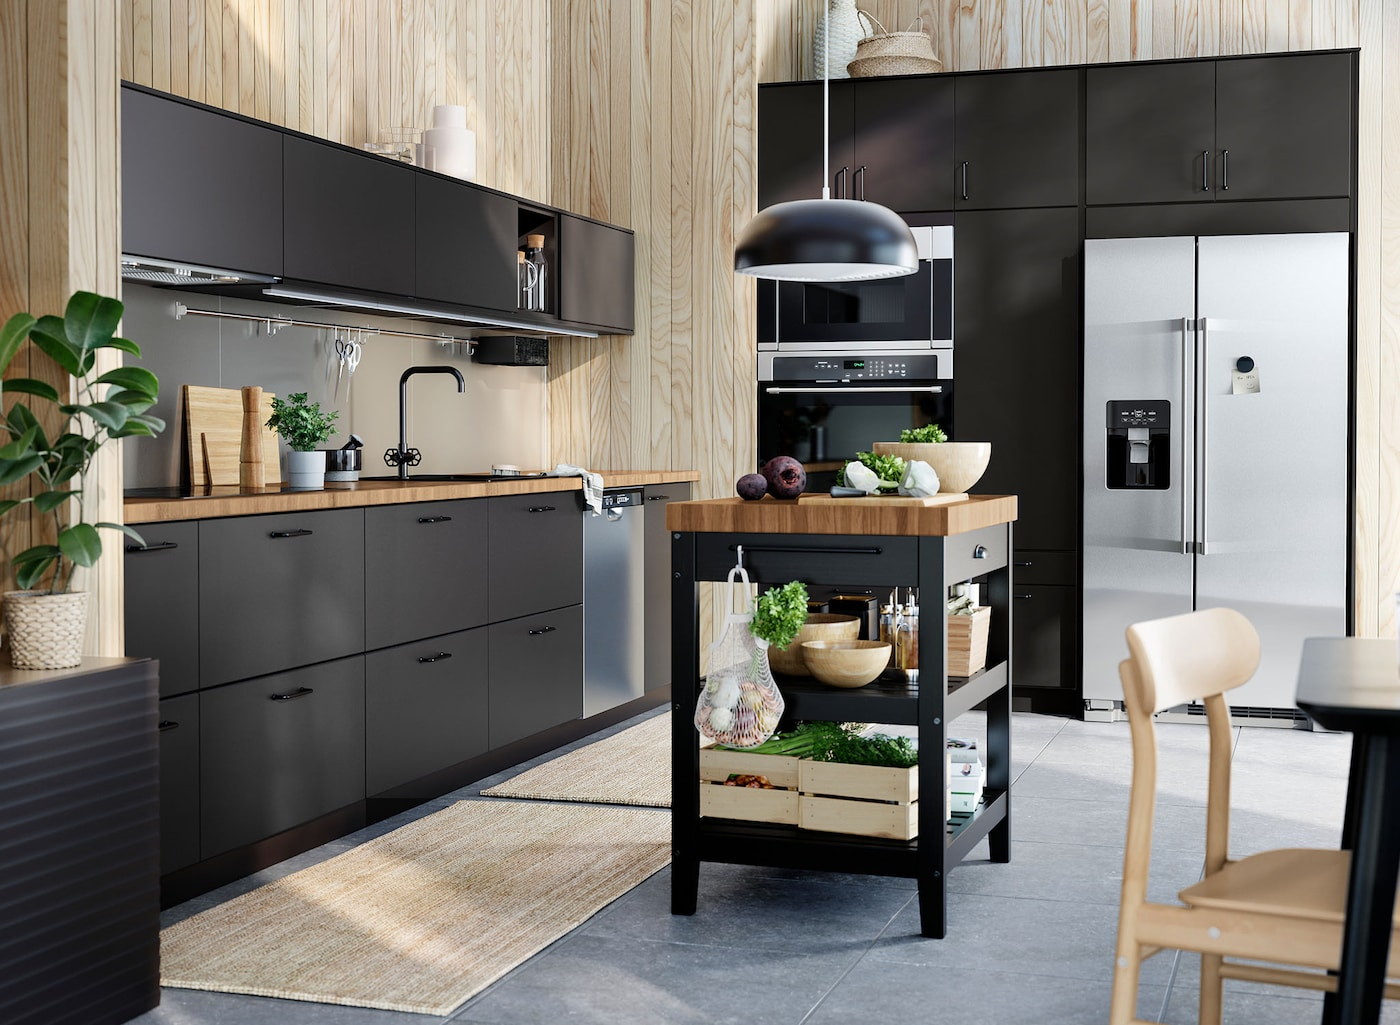 Linking to the Configurable kitchen room planner